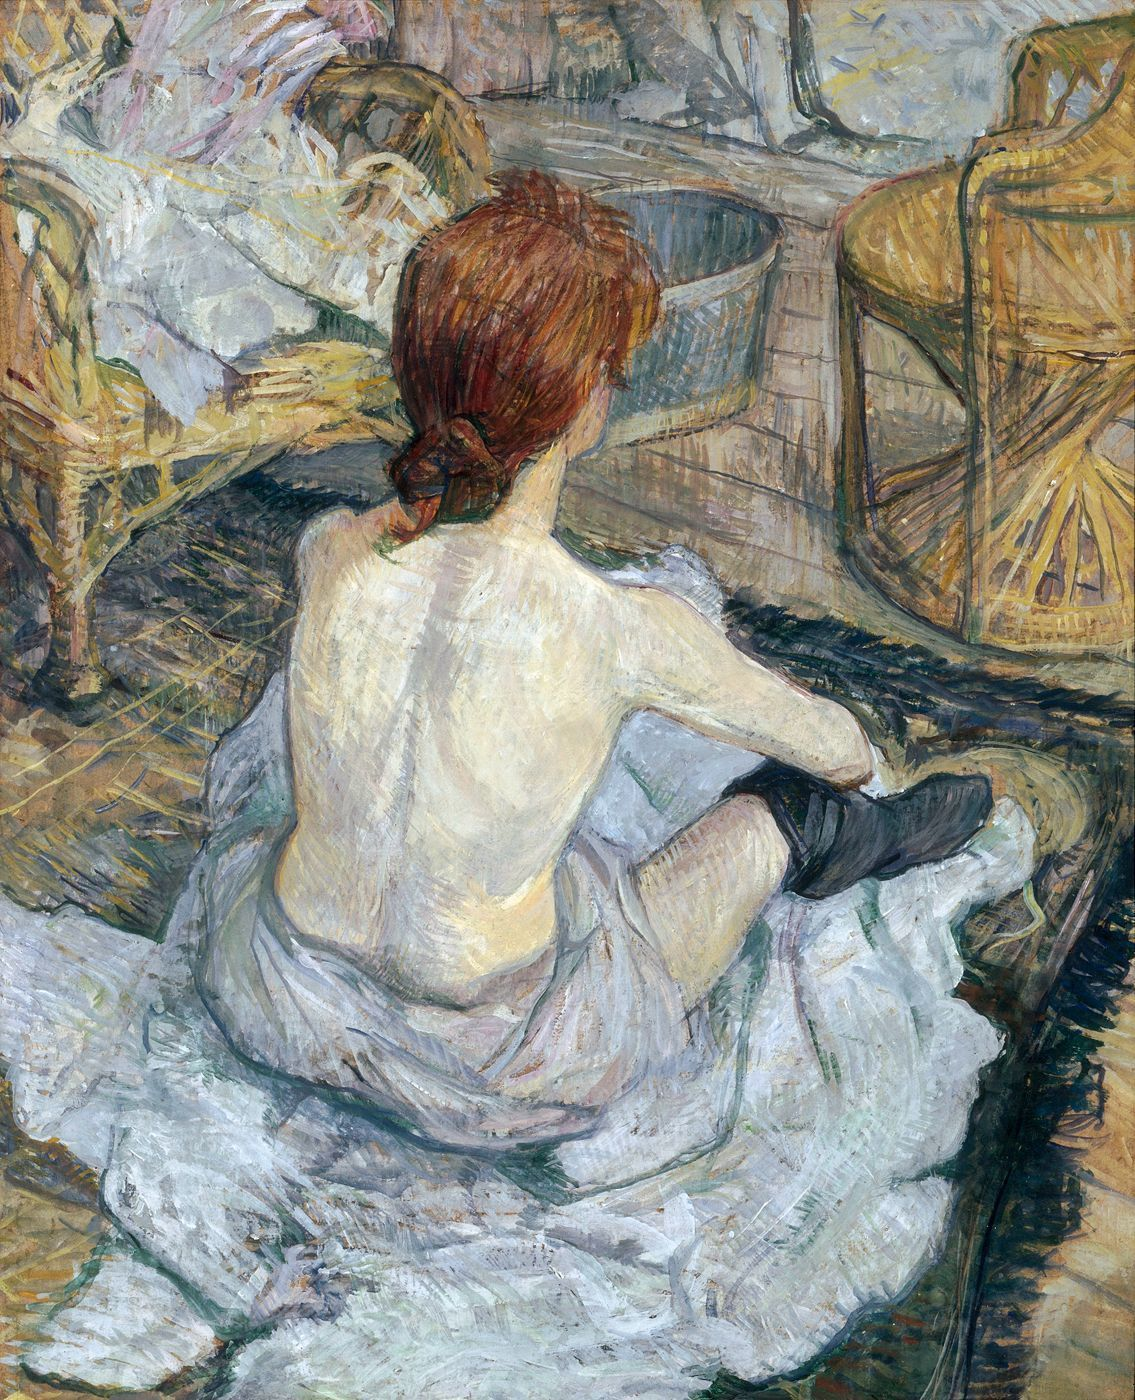 Illustration: La Toilette - Henri de Toulouse-Lautrec